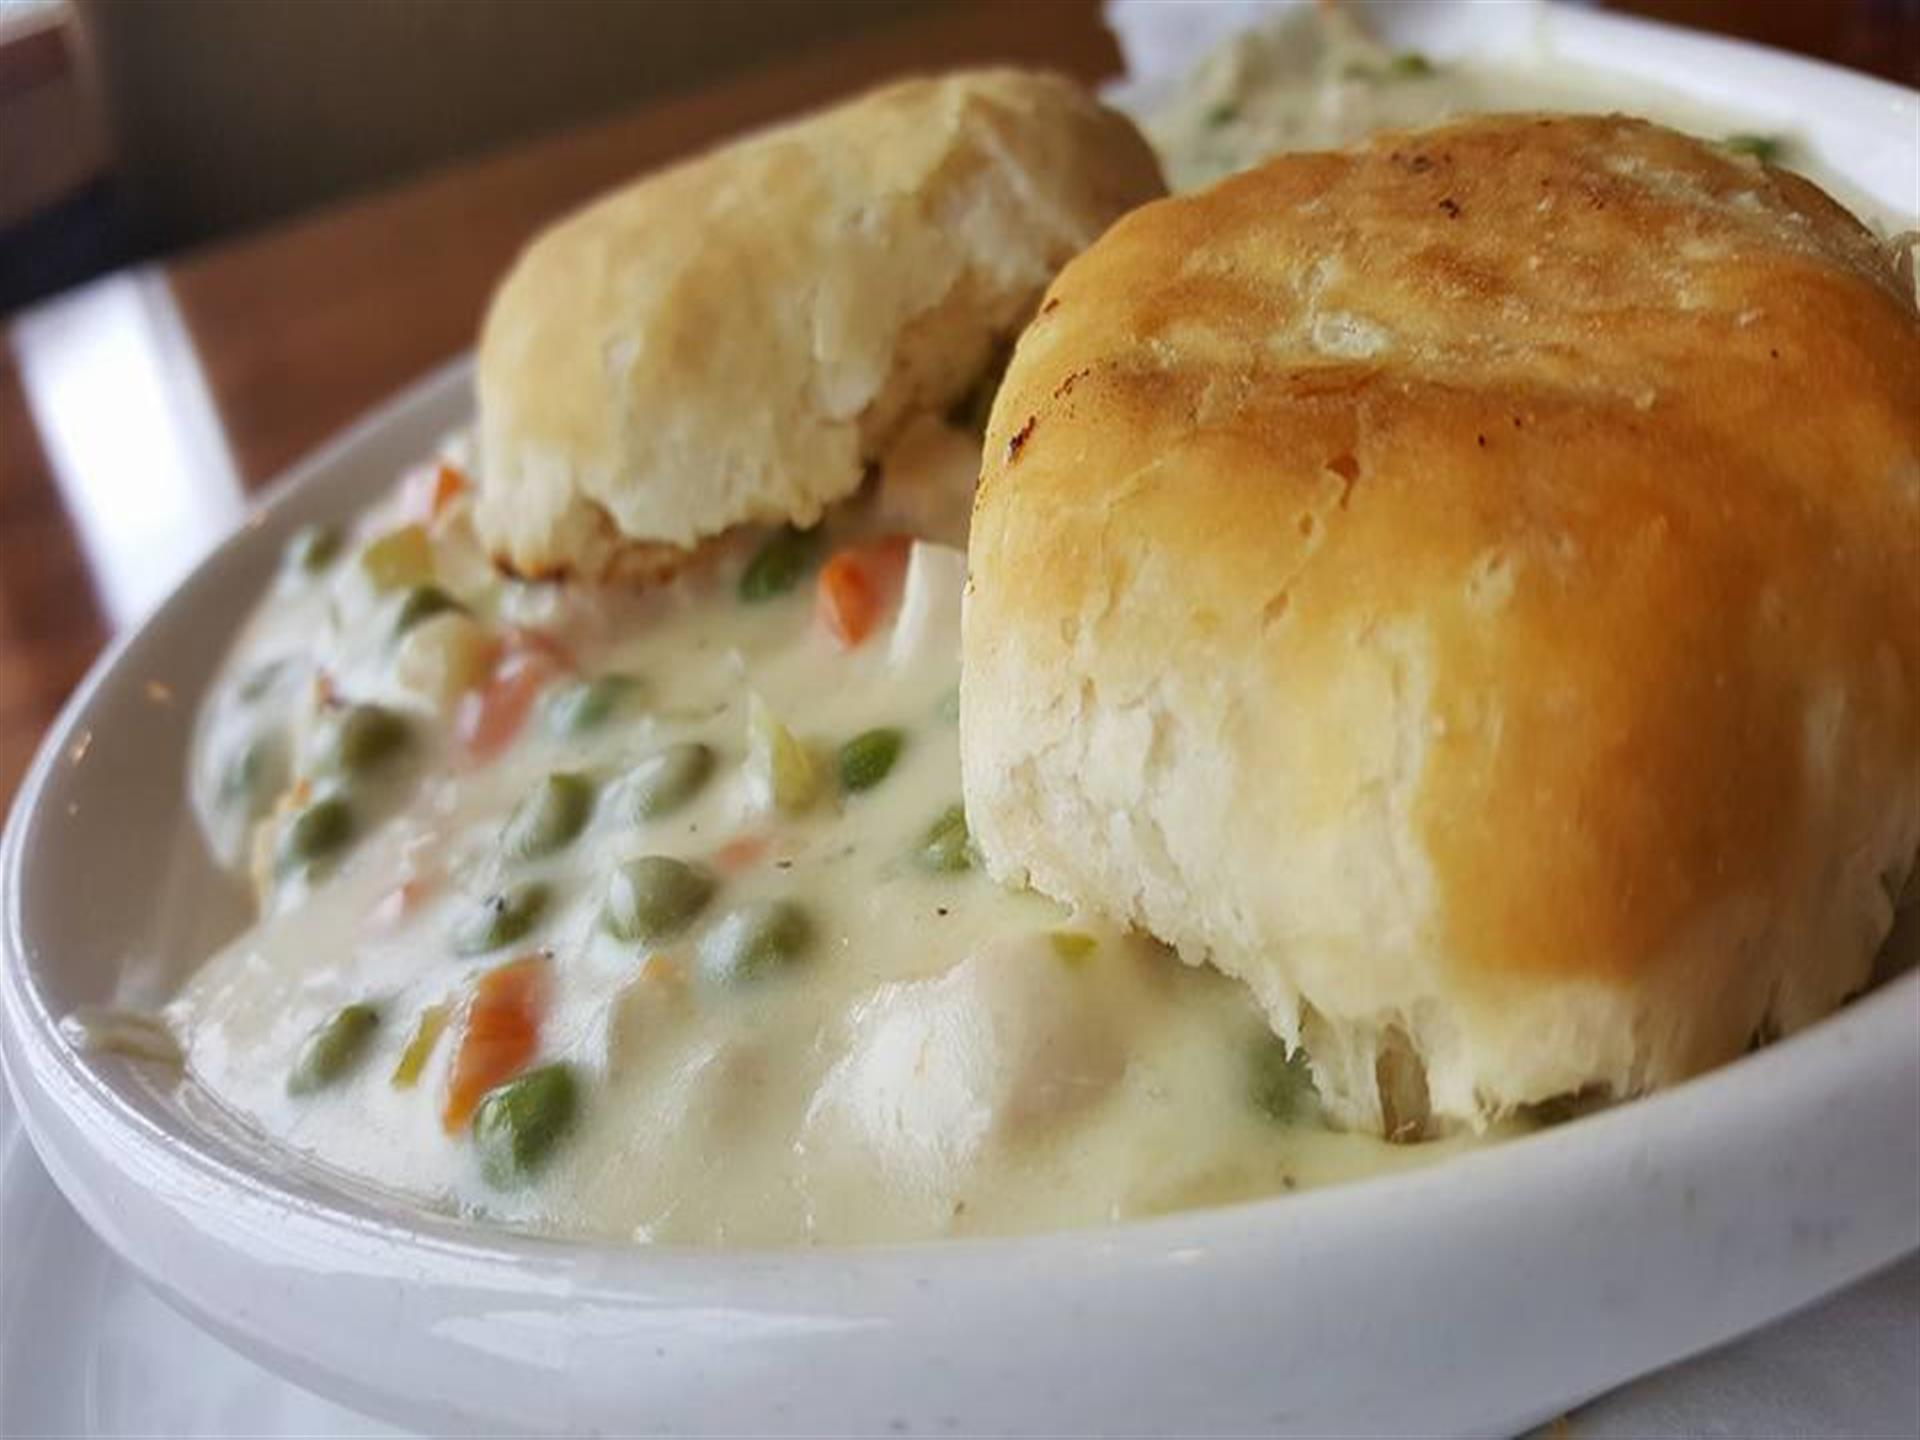 Chicken pot pie with biscuits in a white bowl.